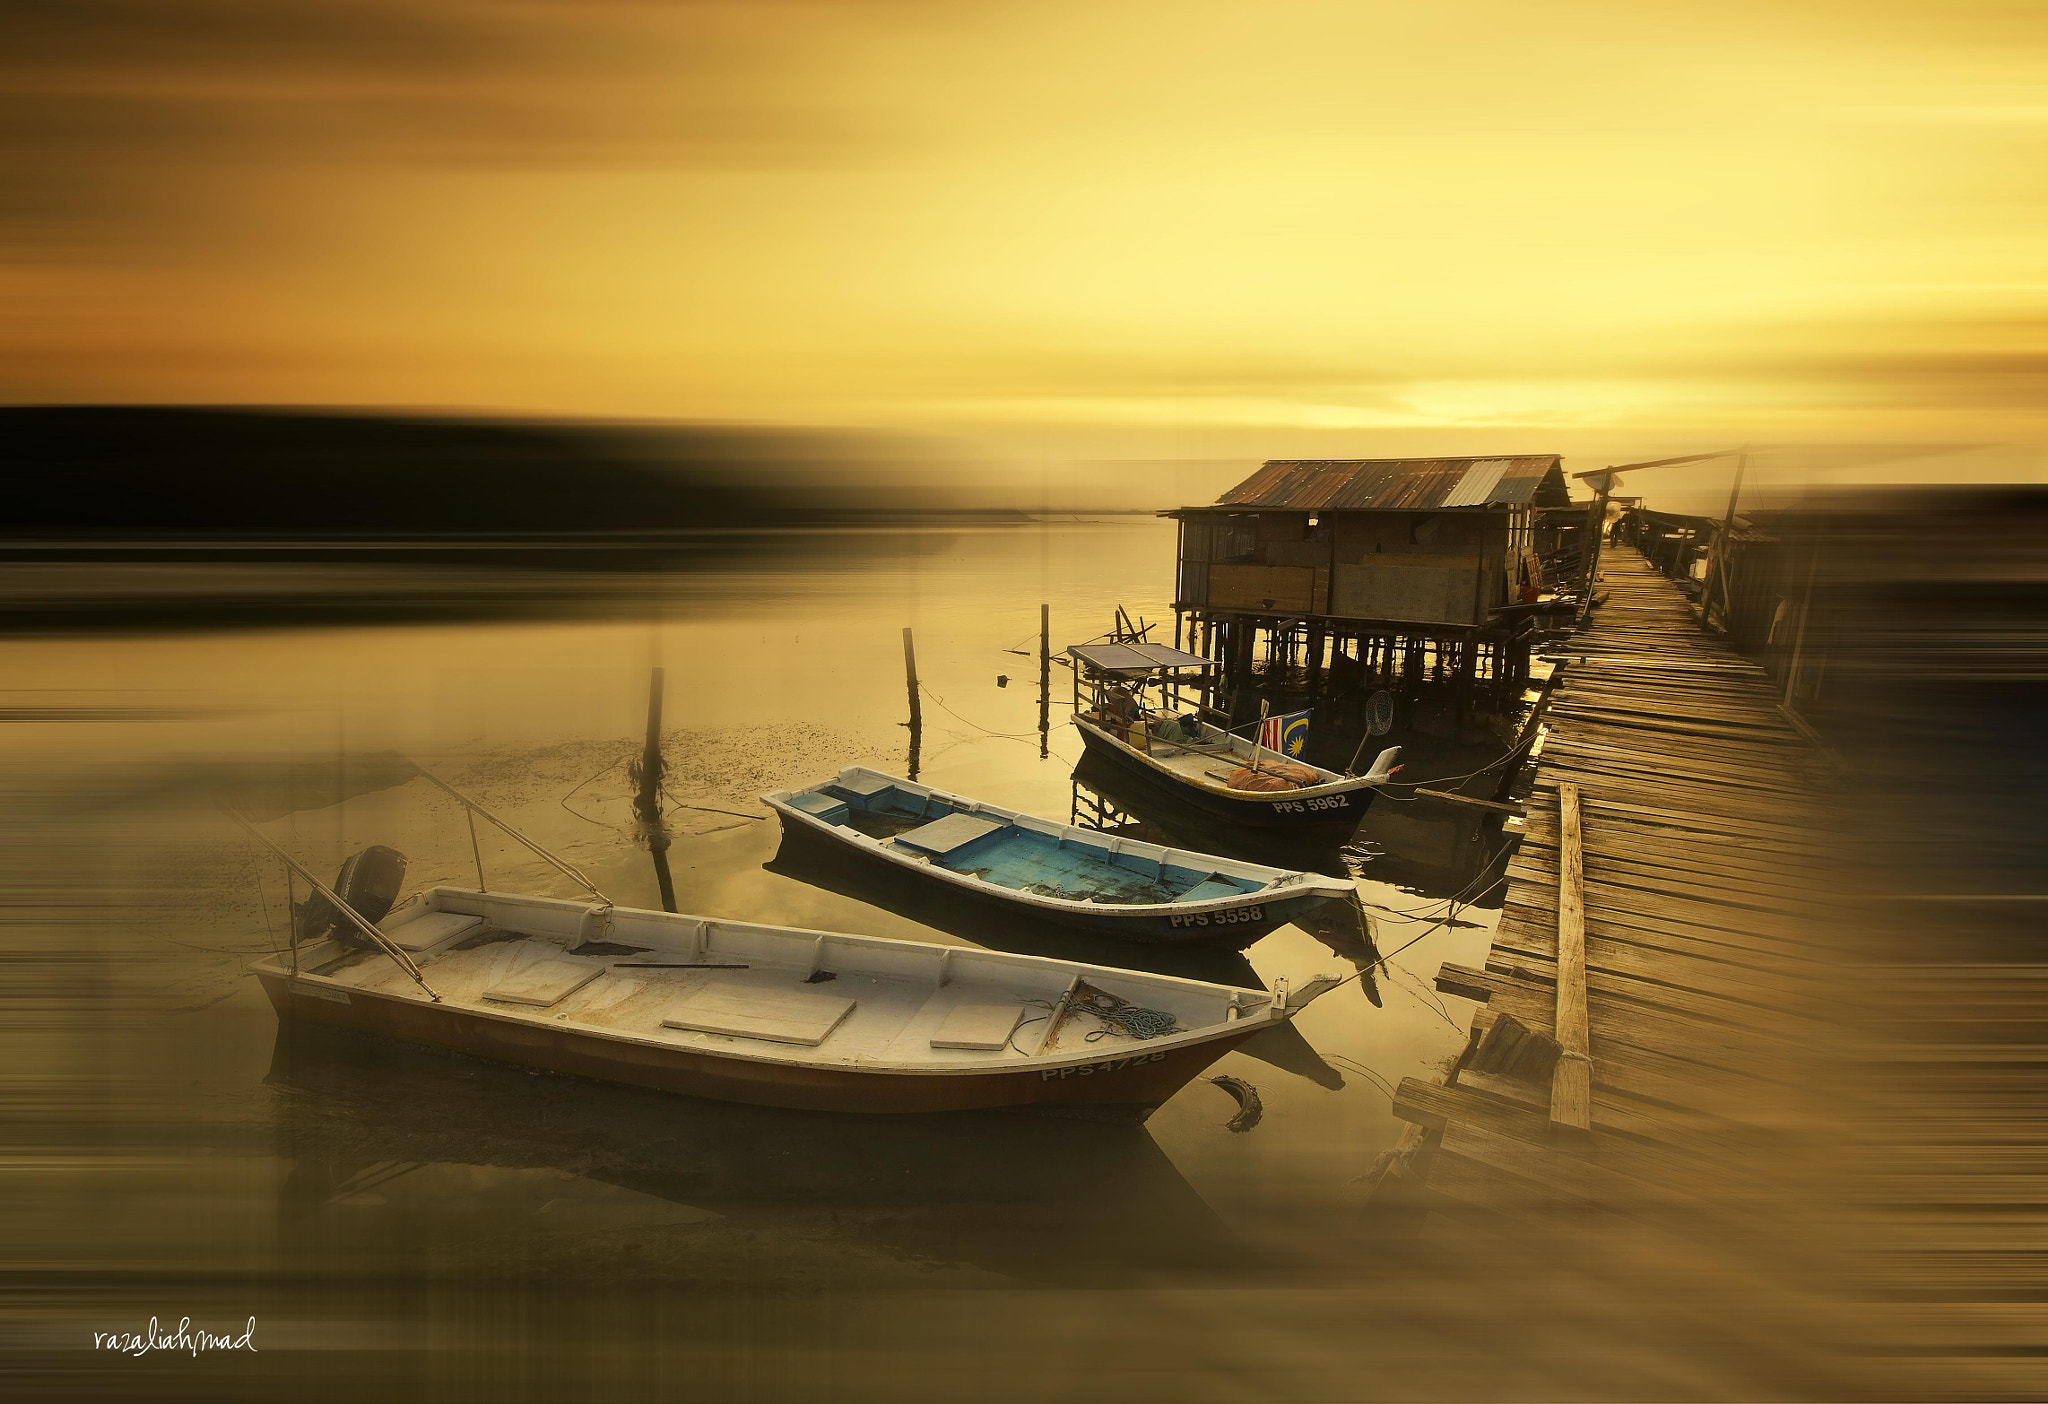 Photograph day off by Razali Ahmad on 500px